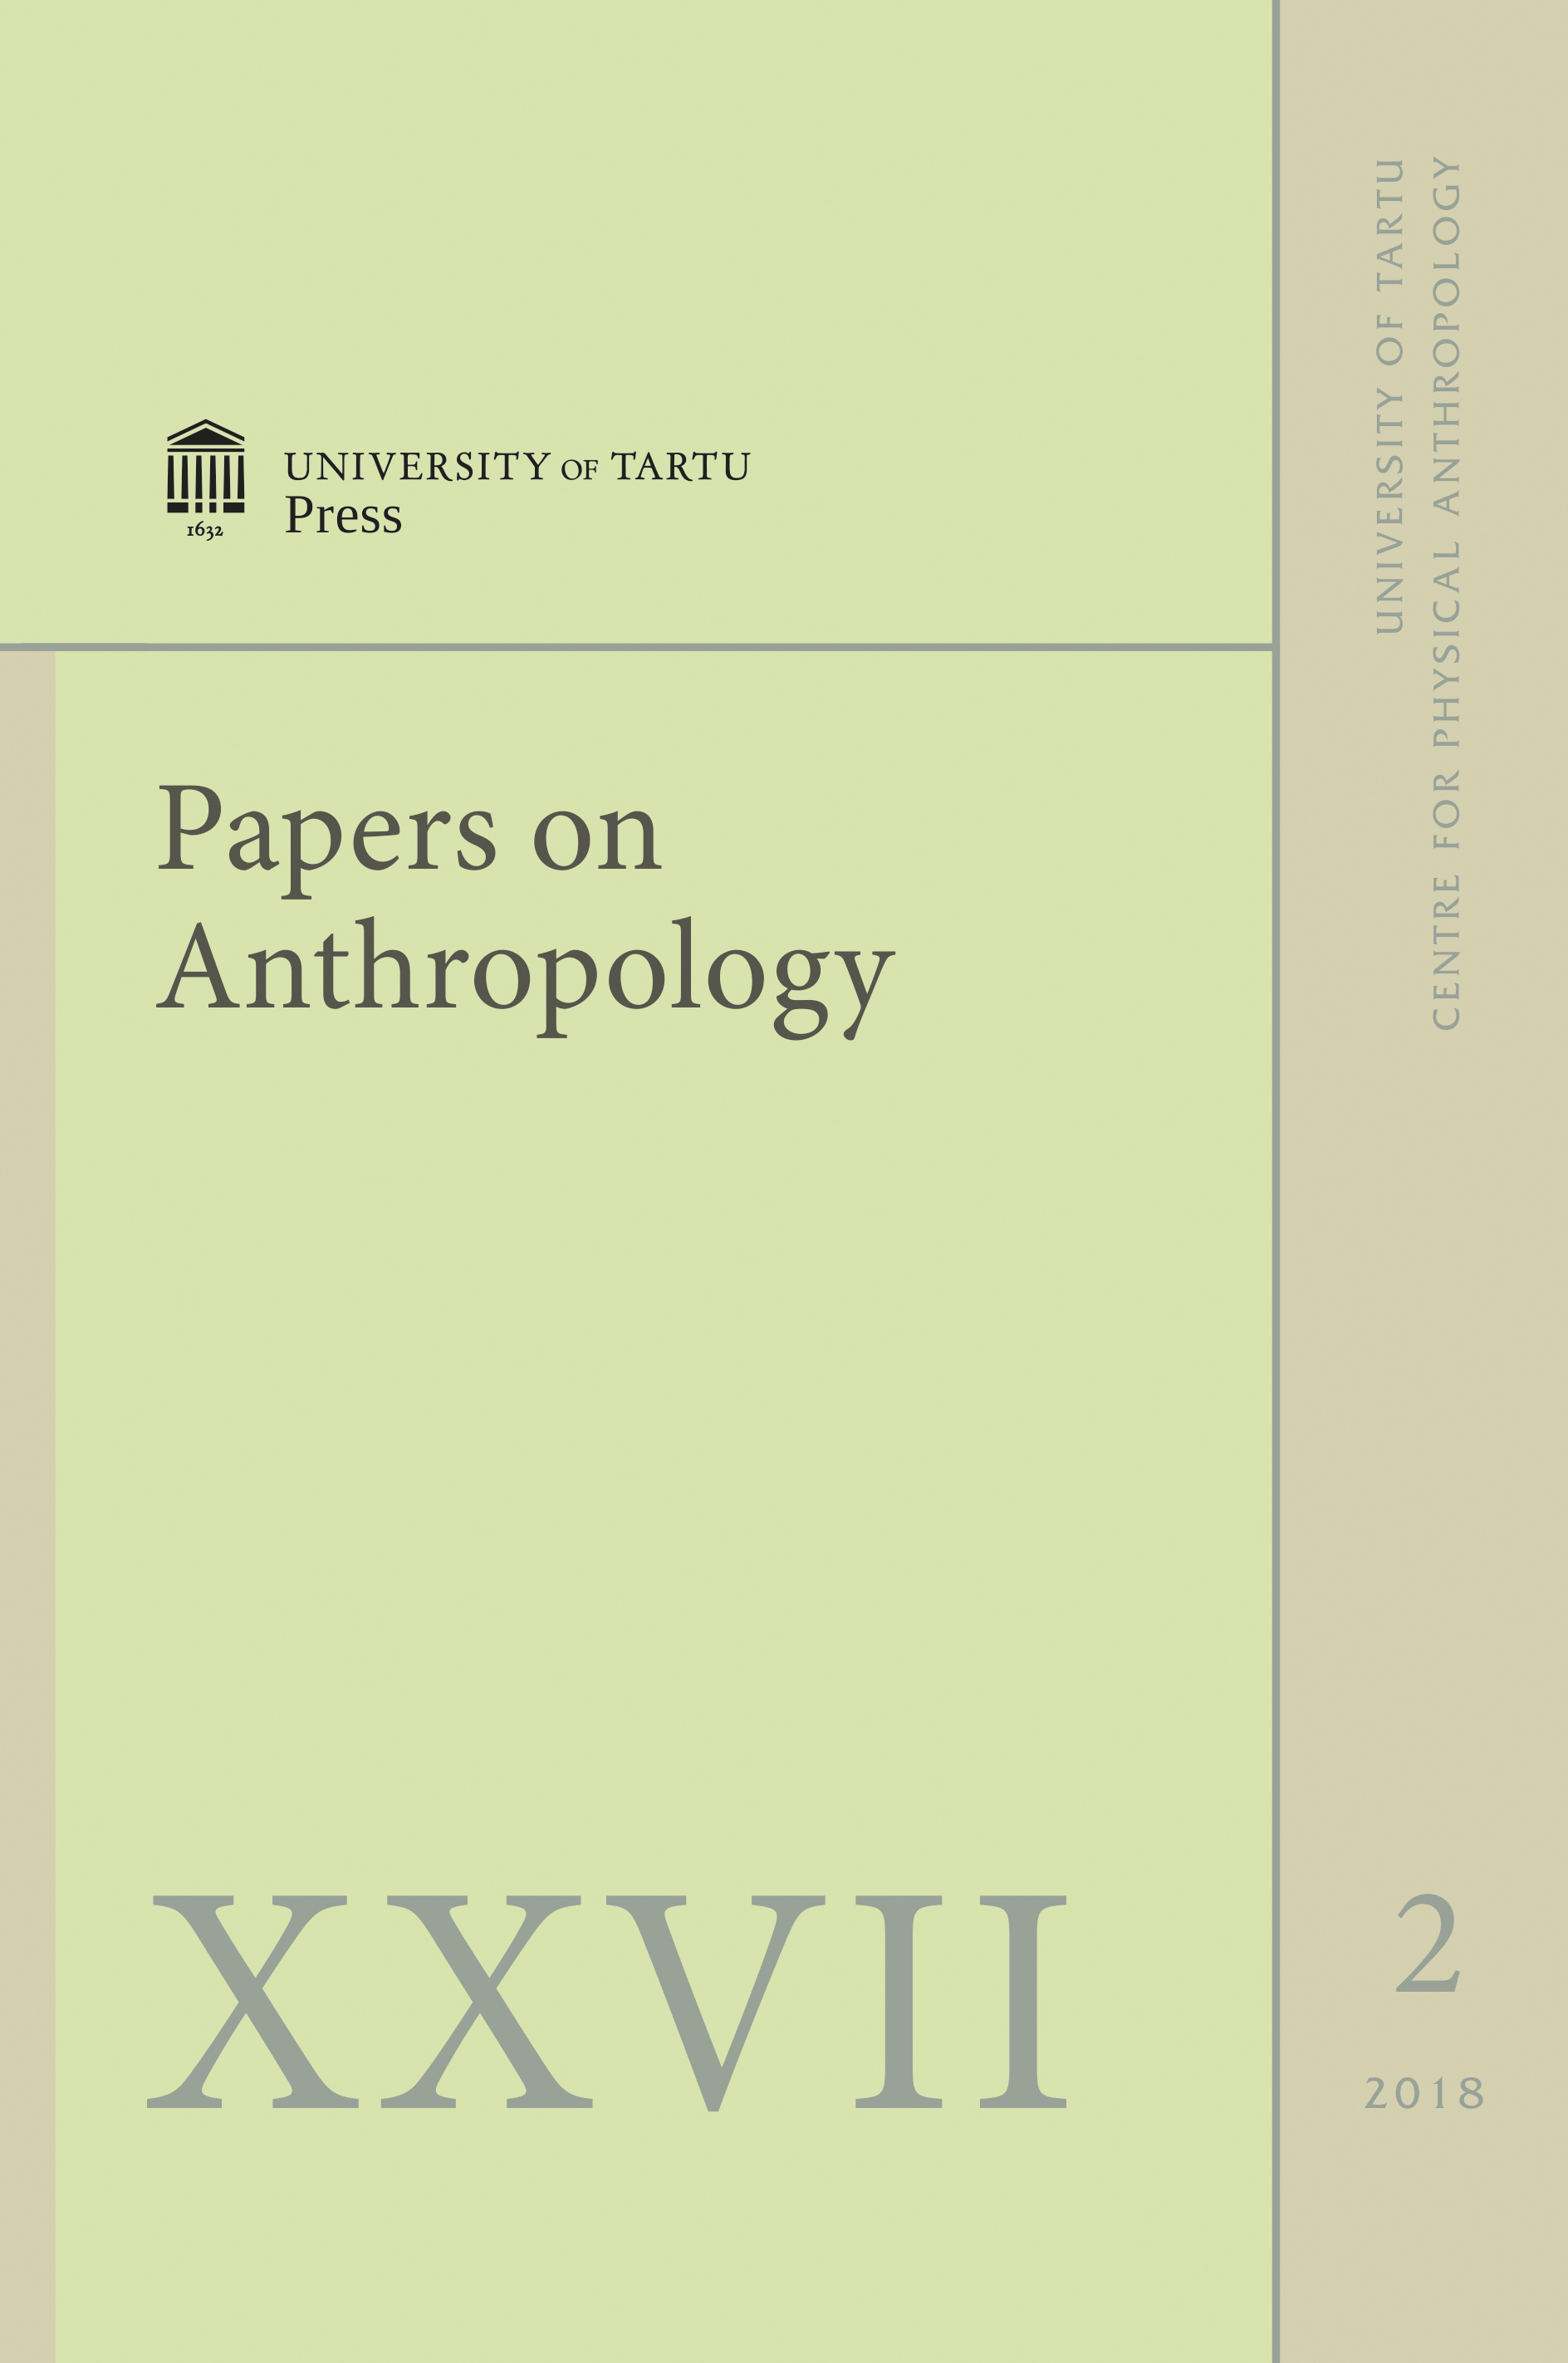 biological anthropology essay topics